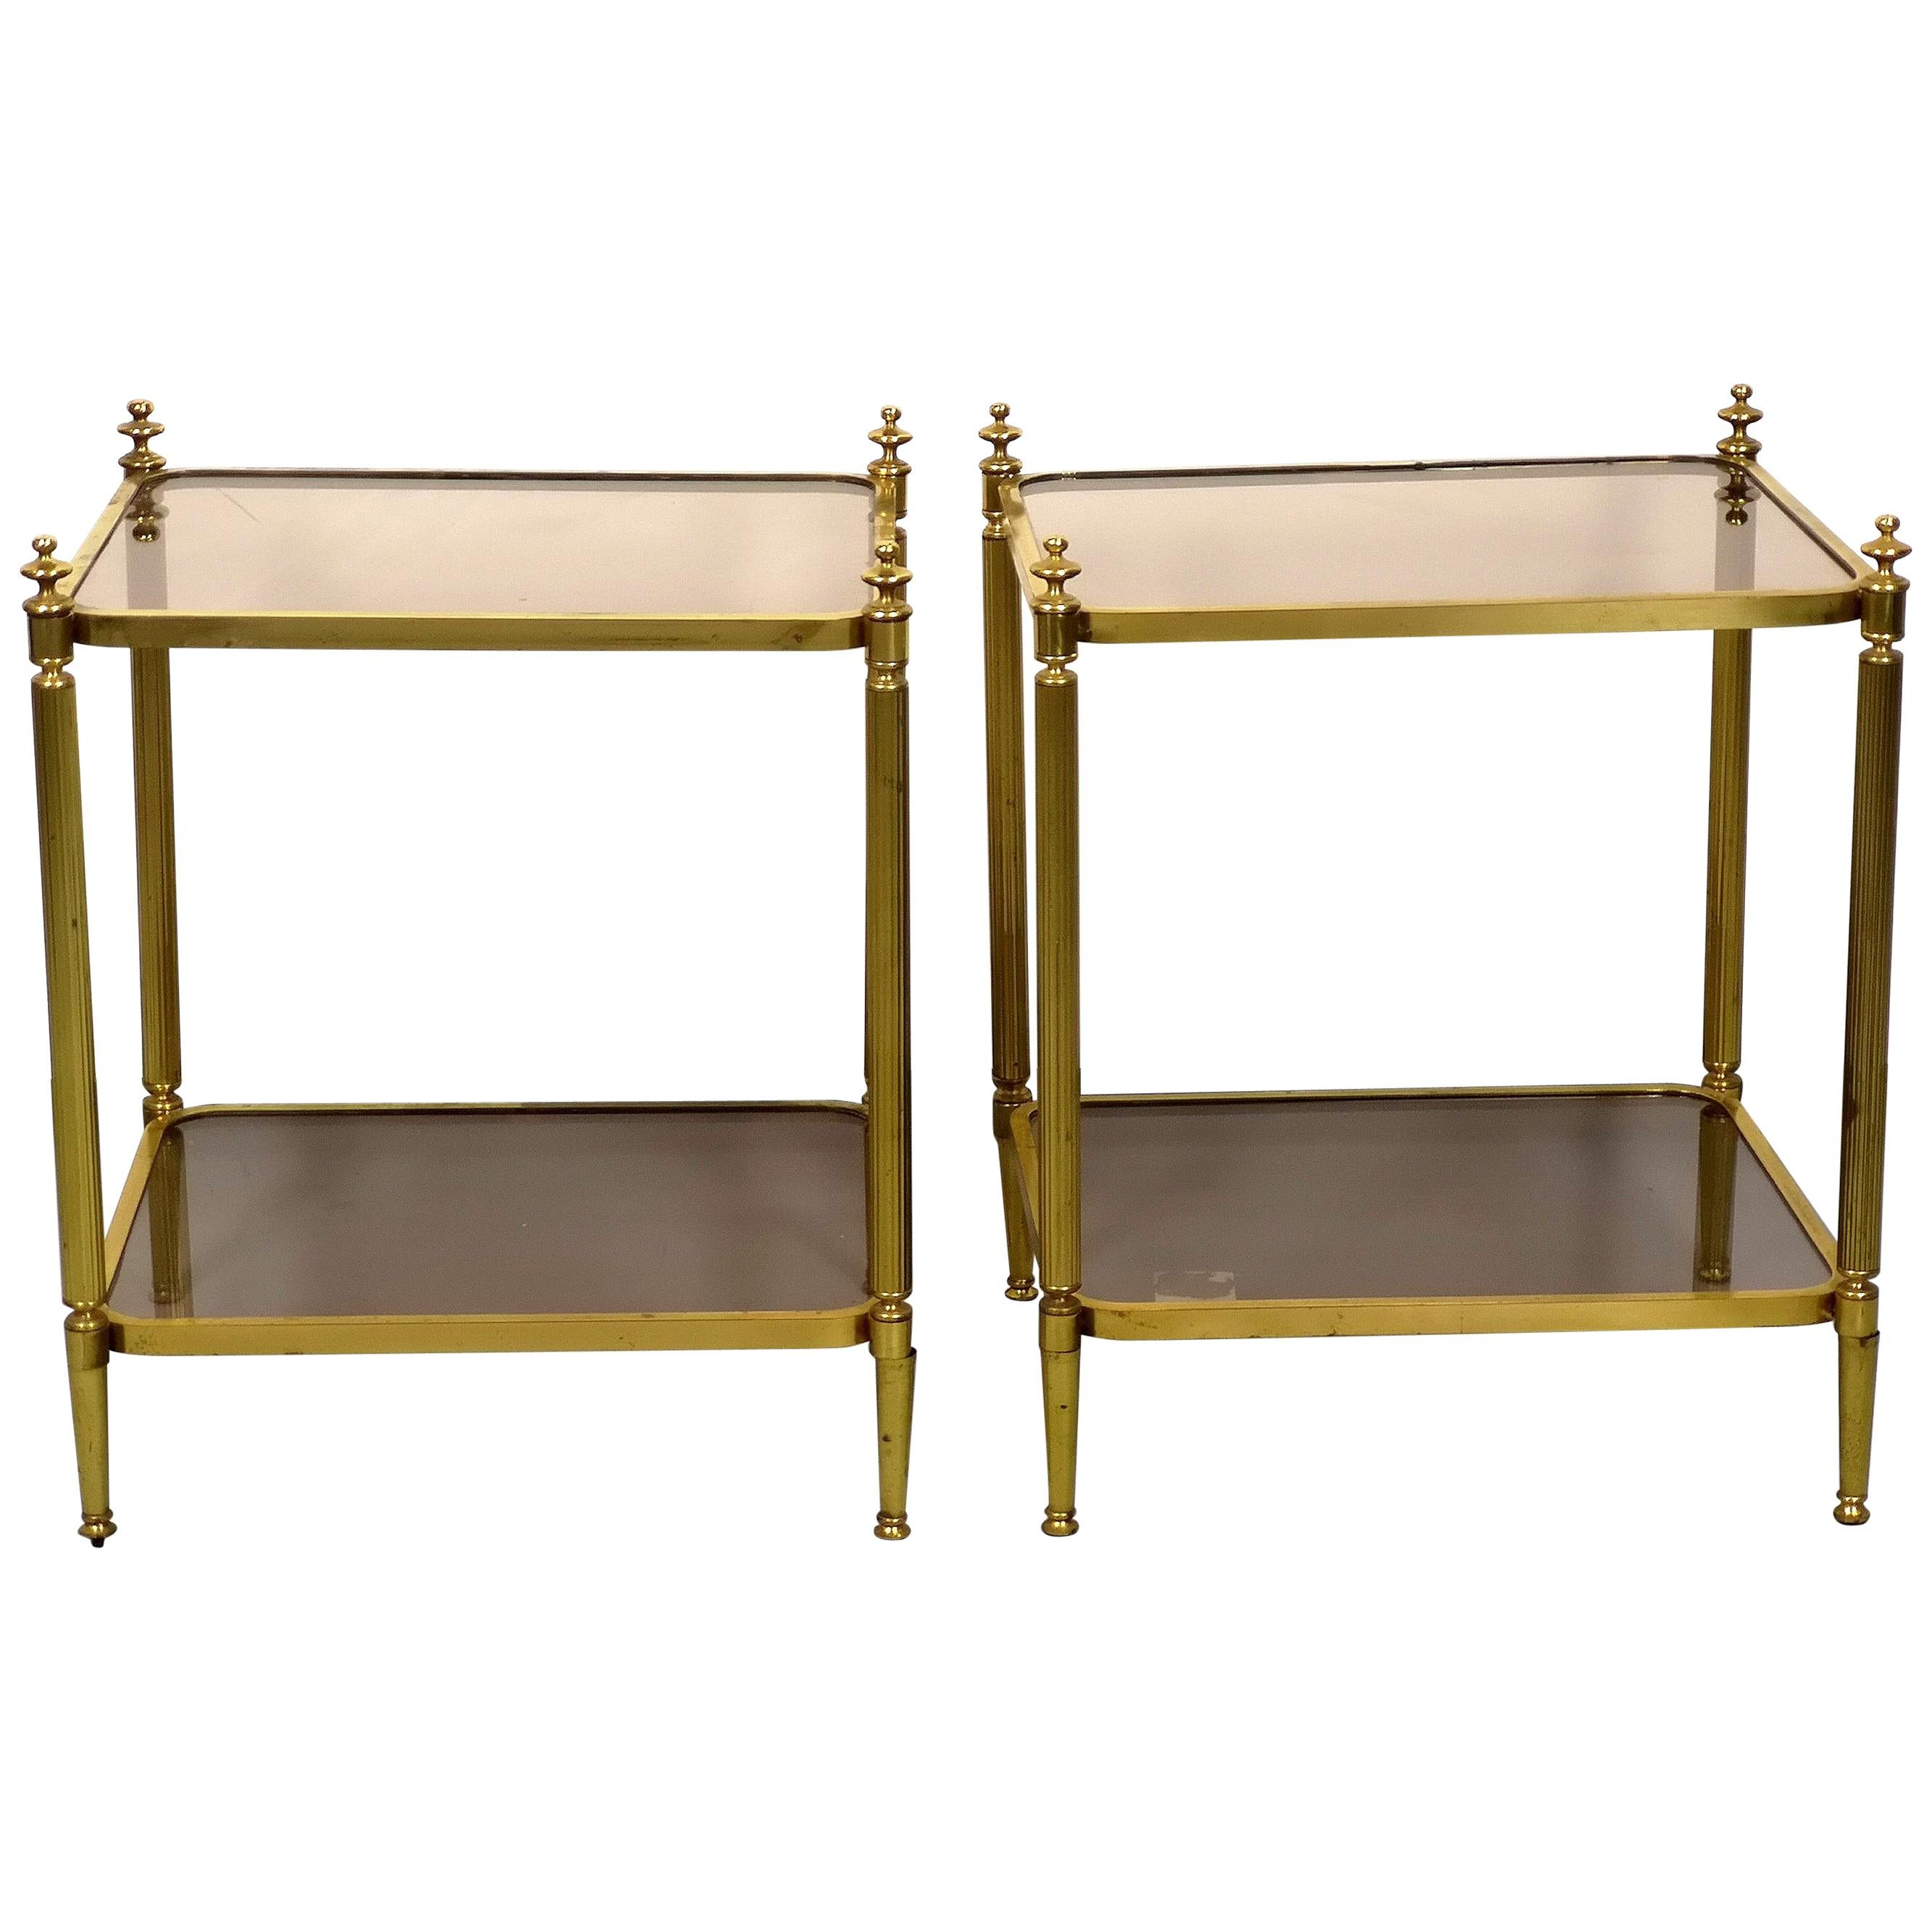 Pair of Brass Side Table with Smoke Glass Shelves, Empire Style, 1970s